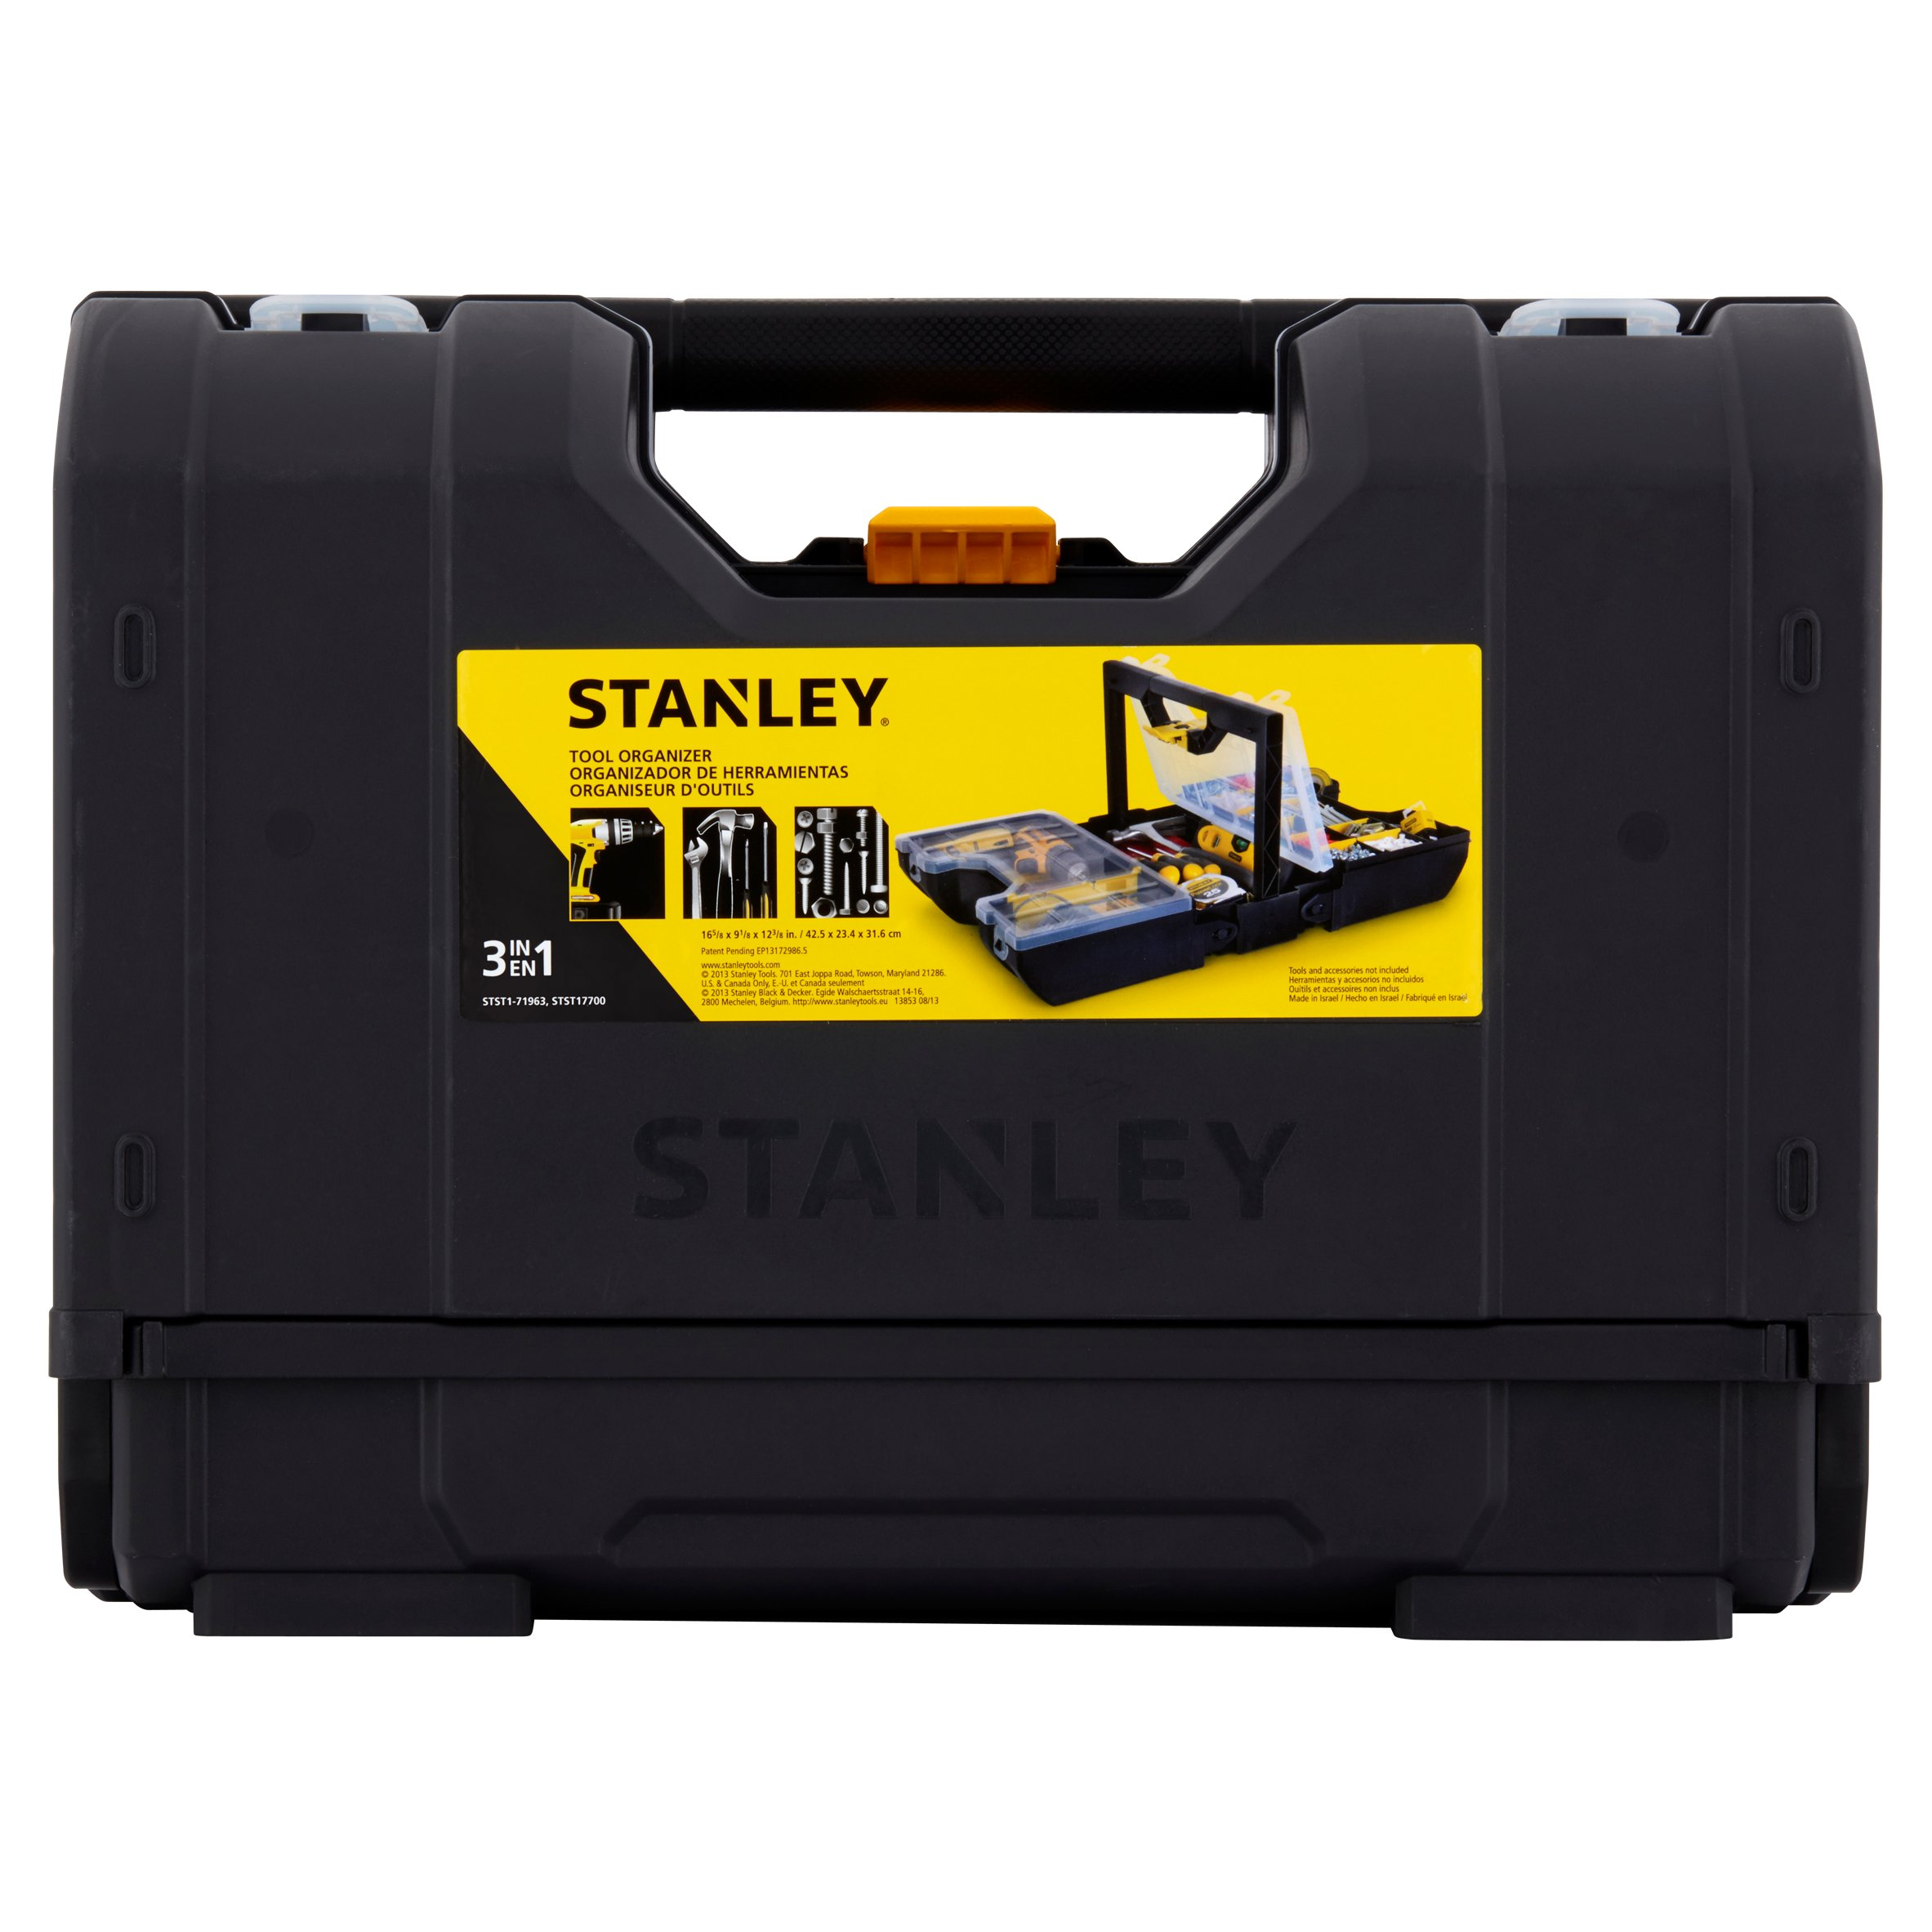 Stanley 3-in-1 Tool Organizer by Stanley Tools